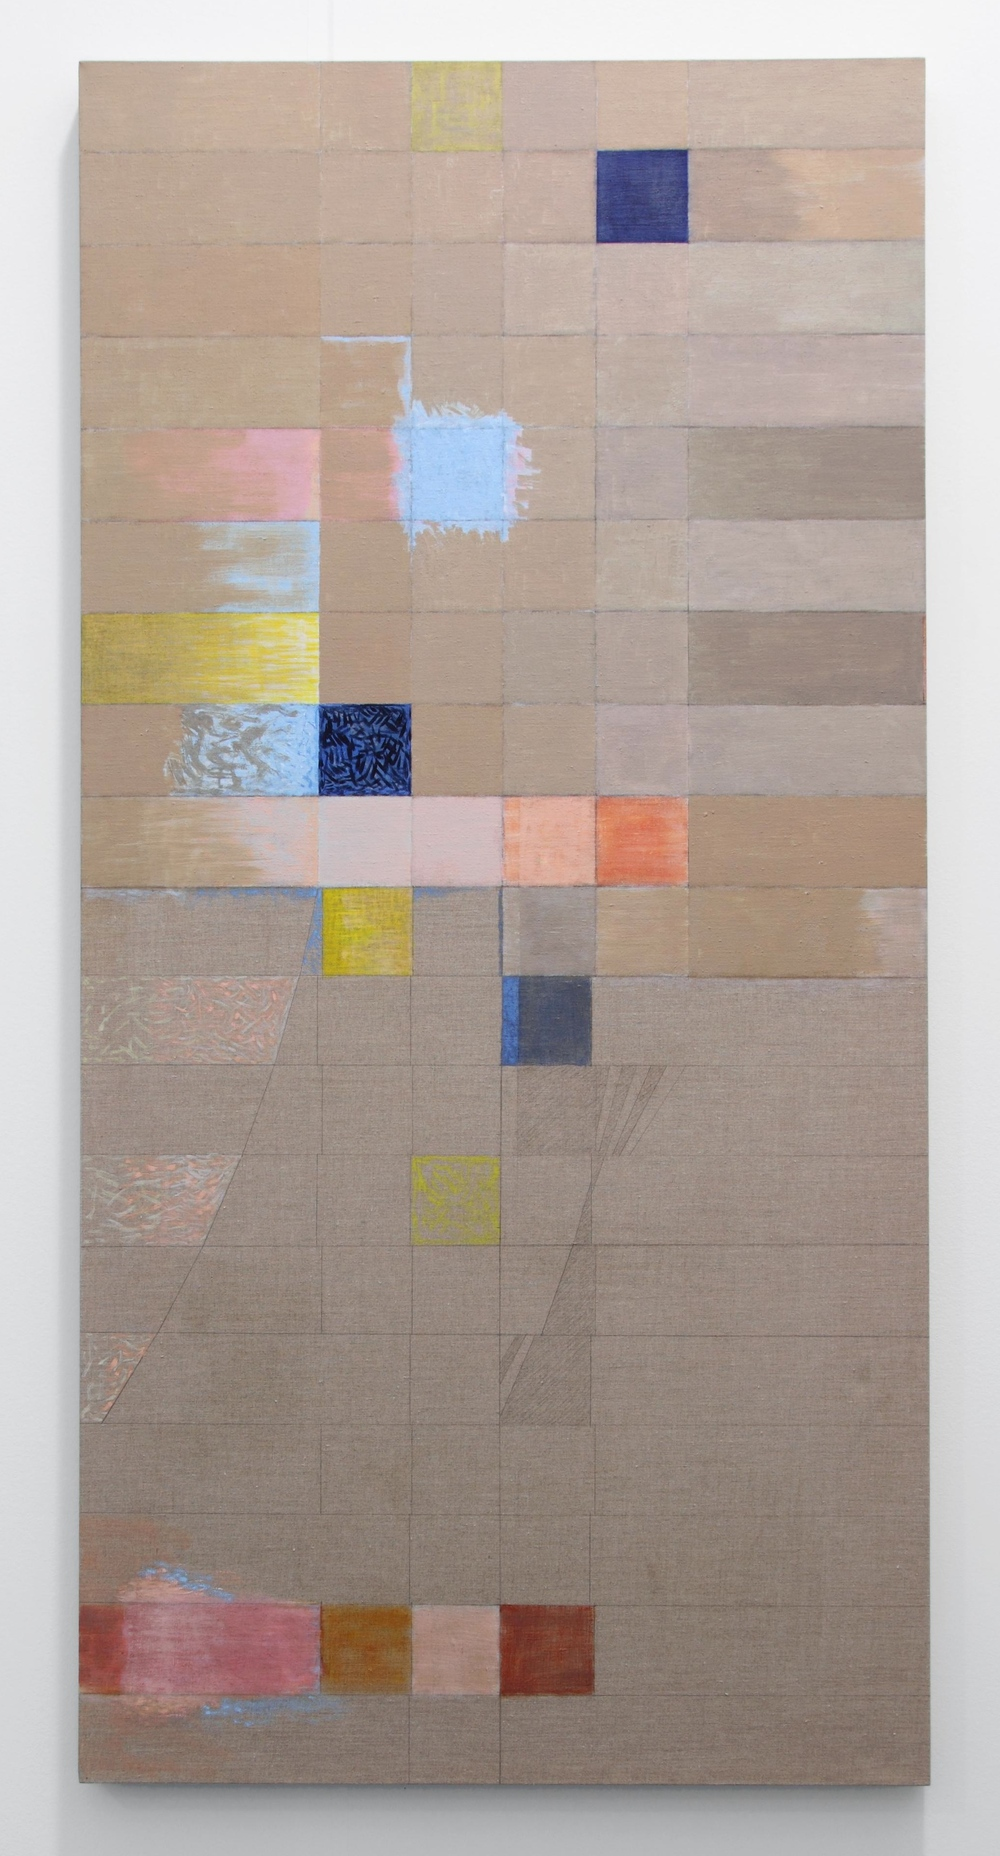 "From Brown to Grey, 2012 oil on linen, 66 1/2x29 3/4"" (Collection: Dean Colson and Aileen Ugalde, Miami)"